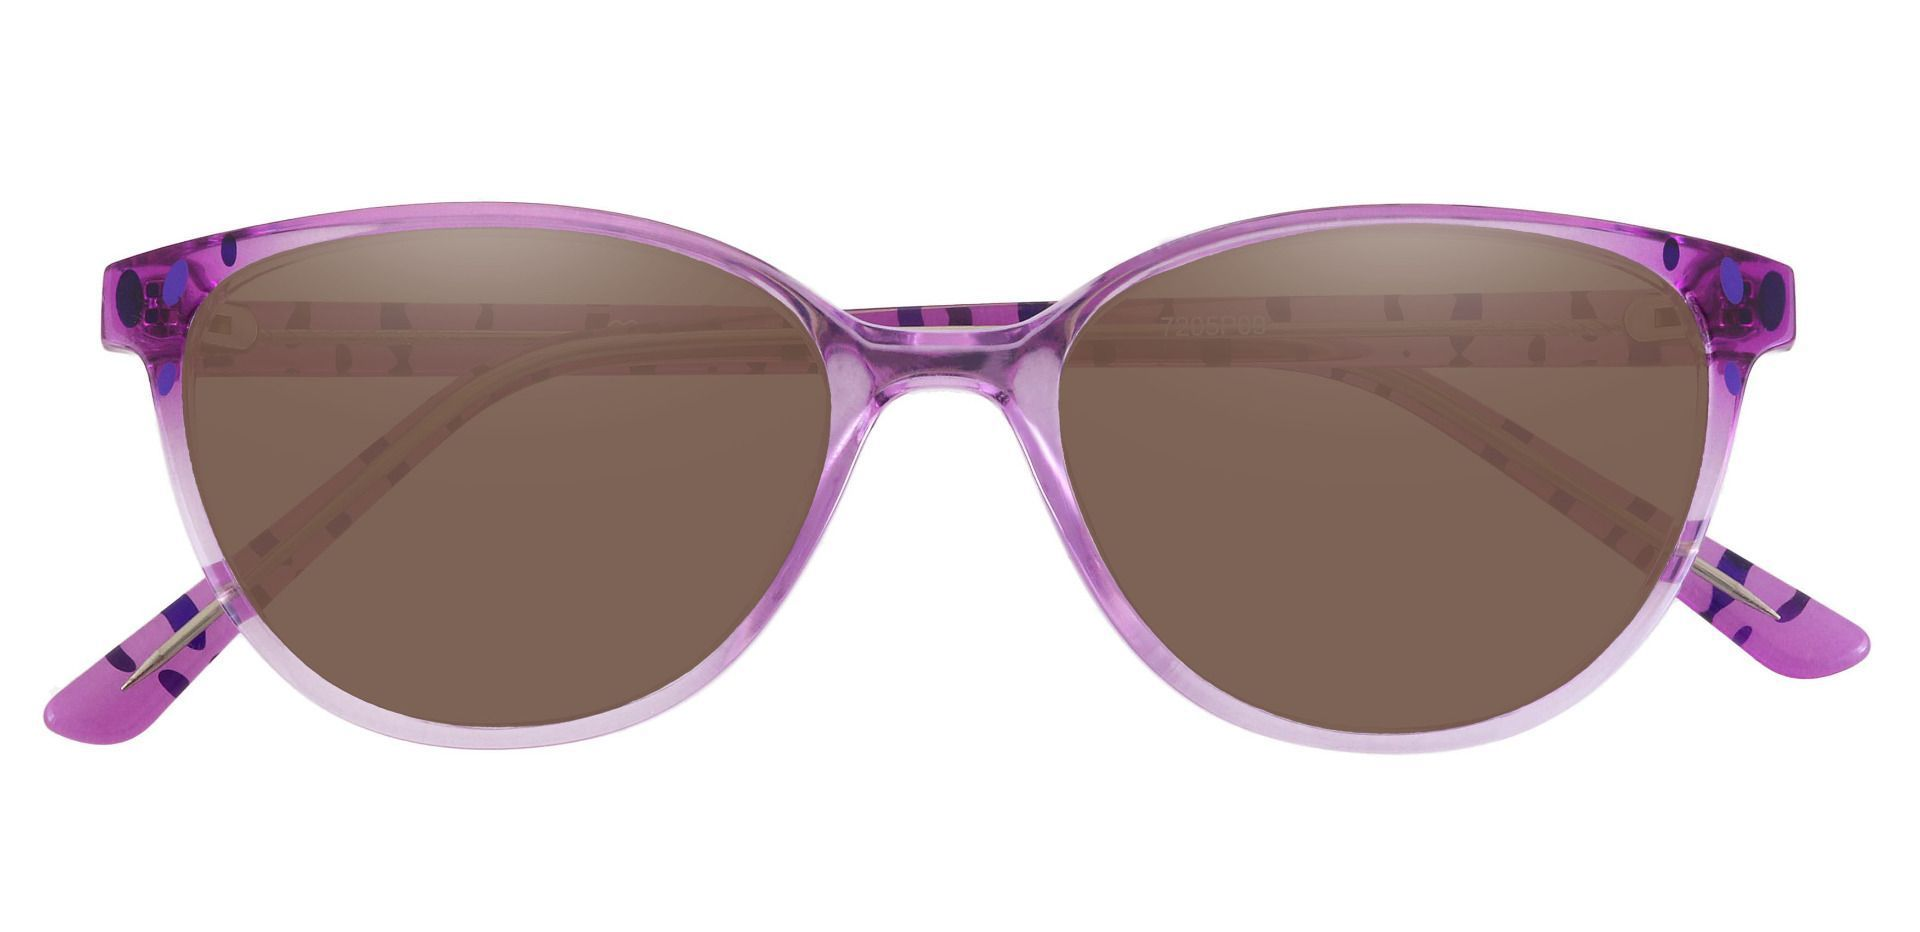 Carma Oval Prescription Sunglasses - Purple Frame With Brown Lenses